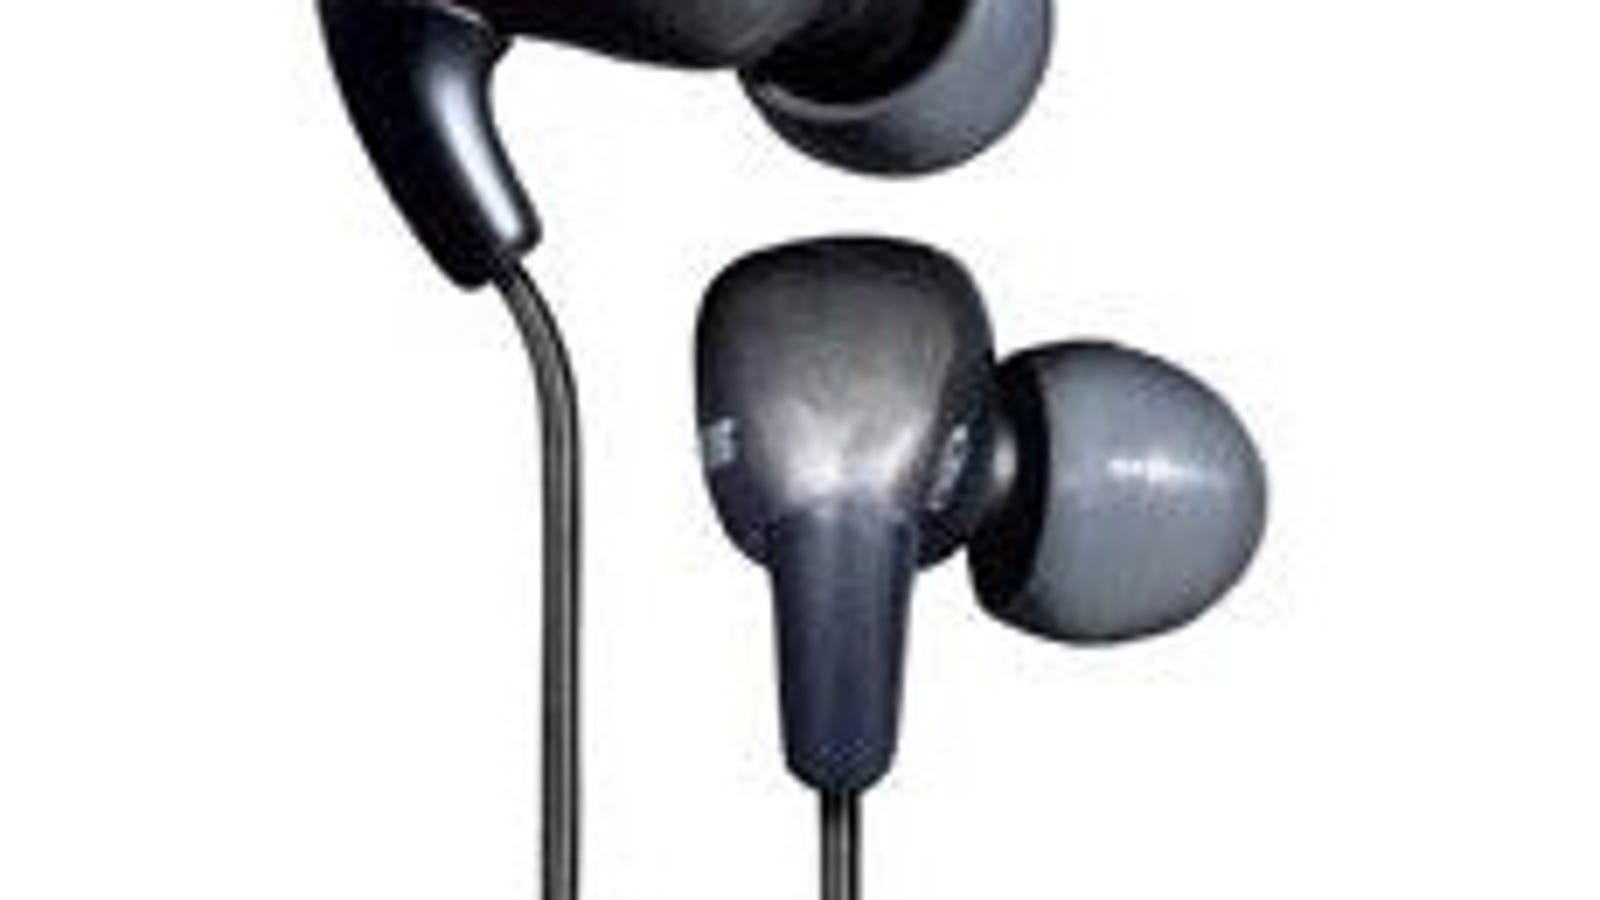 nokia bluetooth headphones wireless - Shures E500 Earphones